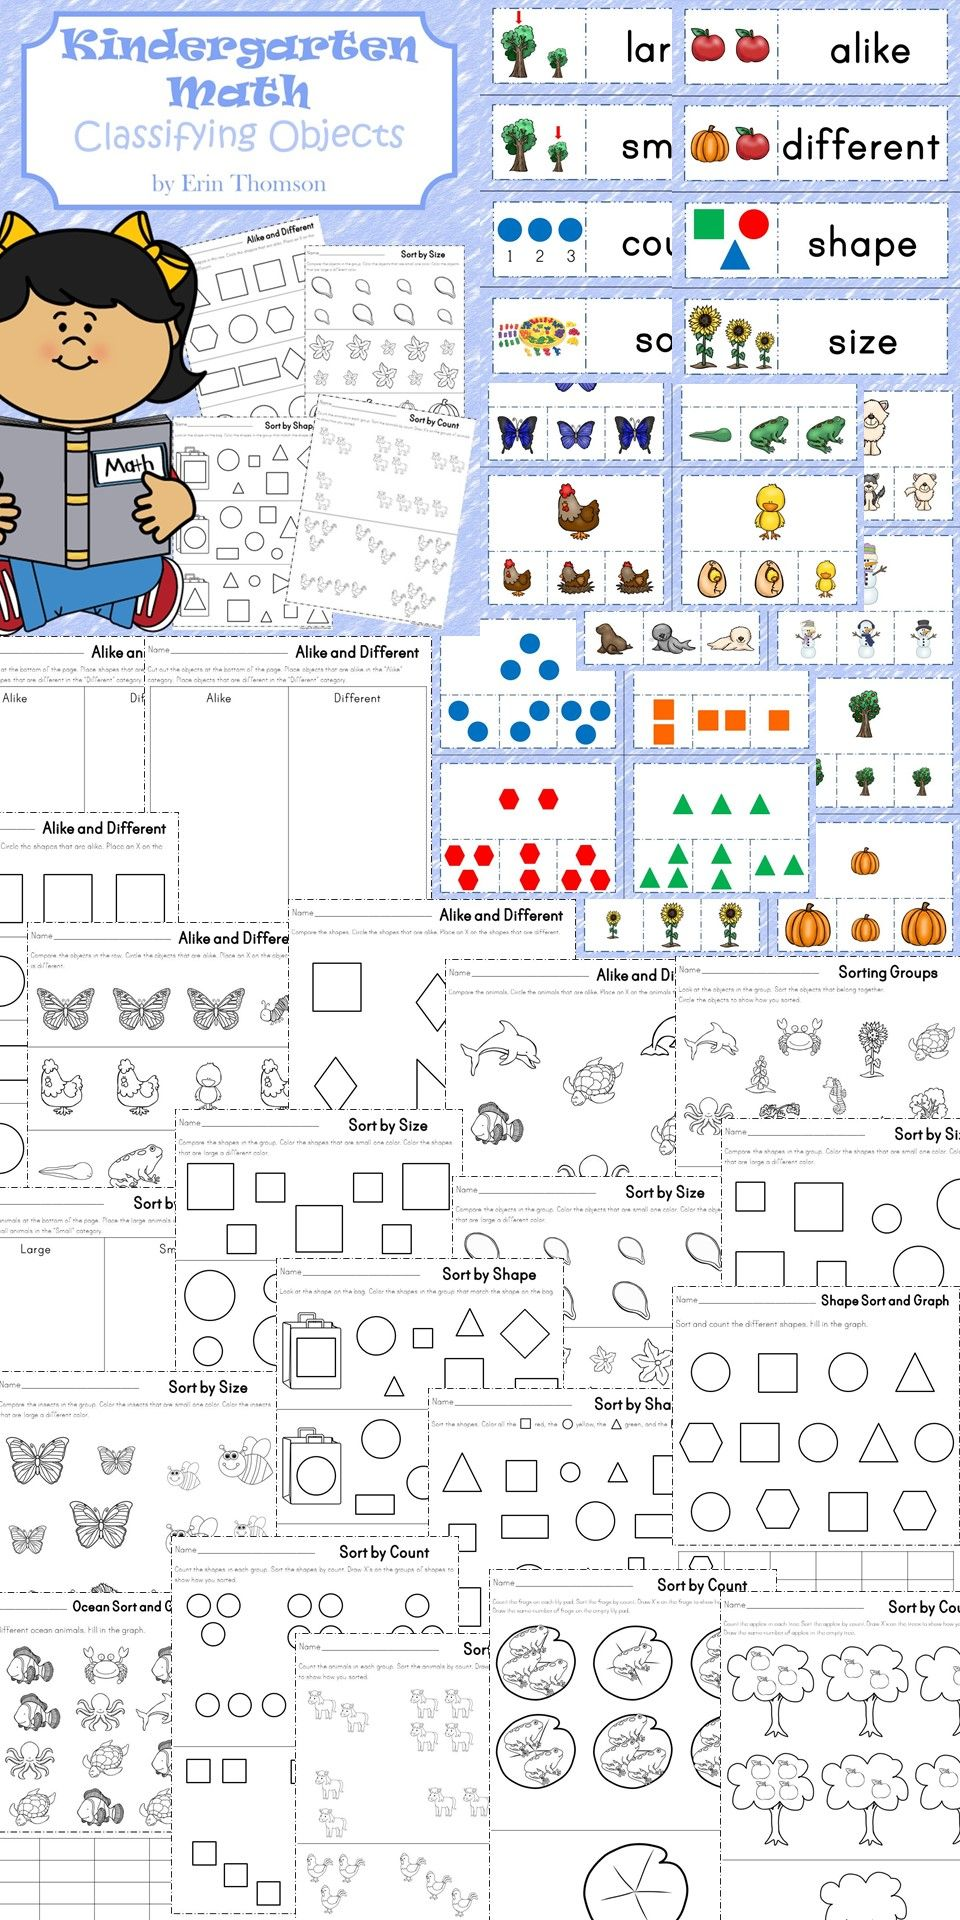 Classifying Objects Unit Sorting Objects Based On Their Size Shape And Count Kindergarten Math Kindergarten Math Units Kindergarten Math Worksheets [ 1920 x 960 Pixel ]